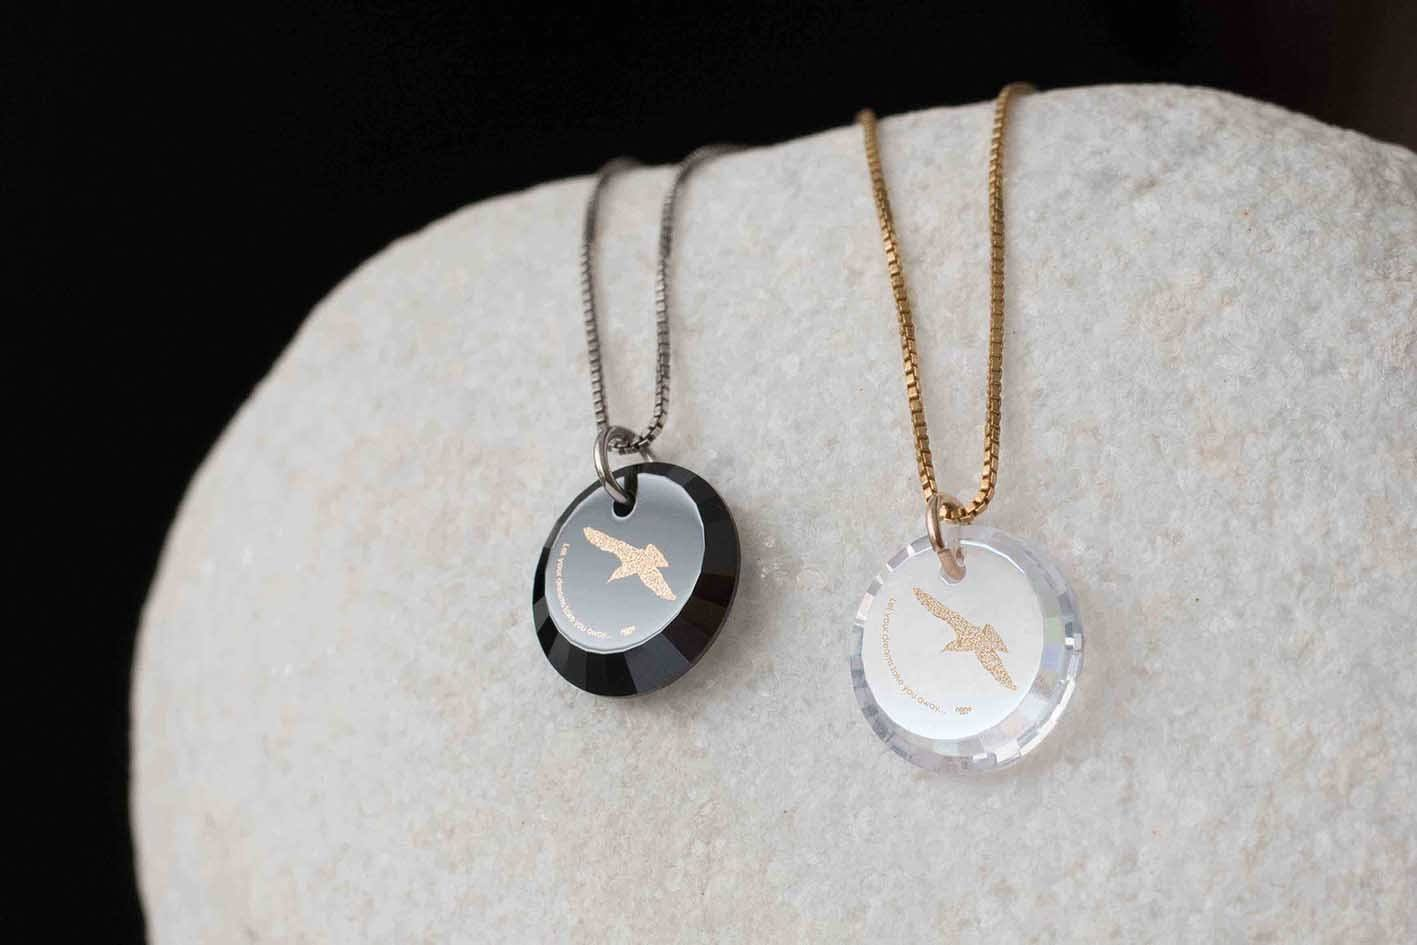 Christmas Gifts for Teens: Bird Necklace Engraved, Daughter Necklace, Nano Jewelry